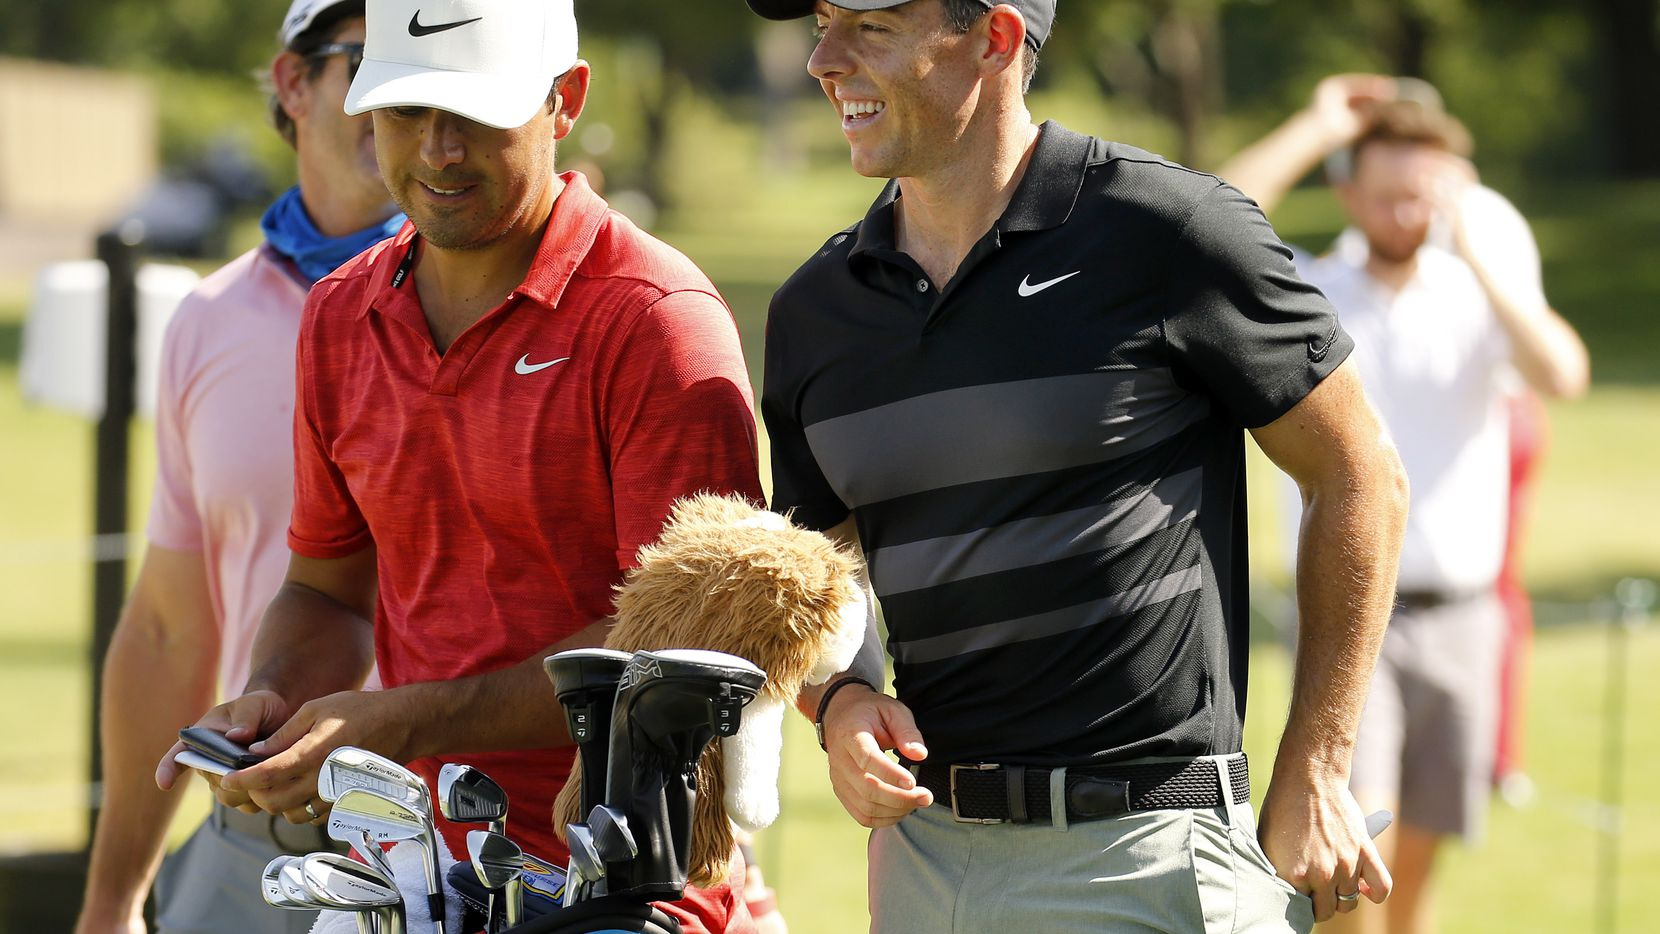 PGA golfer Rory McIlroy (right) at the Charles Schwab Challenge at the Colonial Country Club in Fort Worth on June 9.